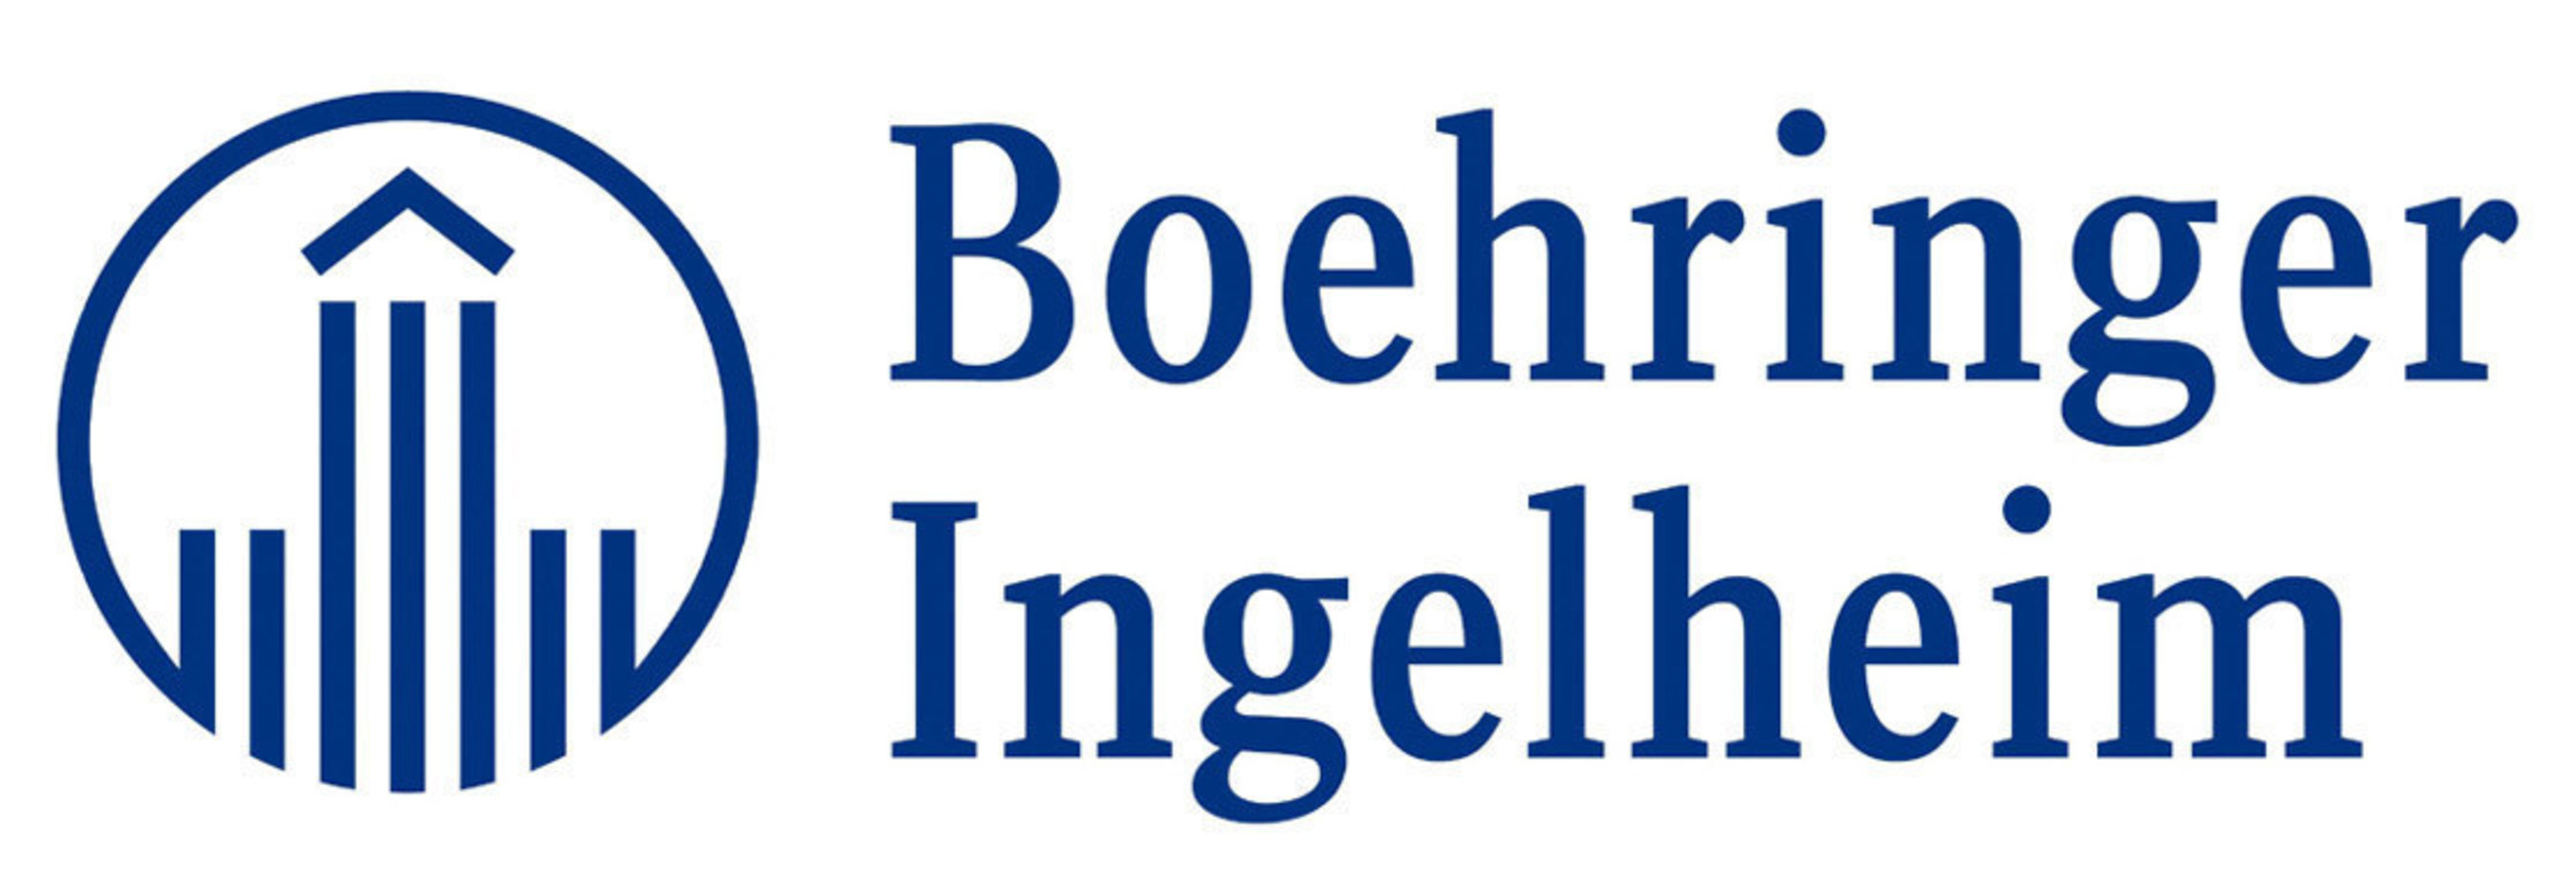 Boehringer Ingelheim Awarded Perfect Score for Workplace Equality for the  LGBT Community